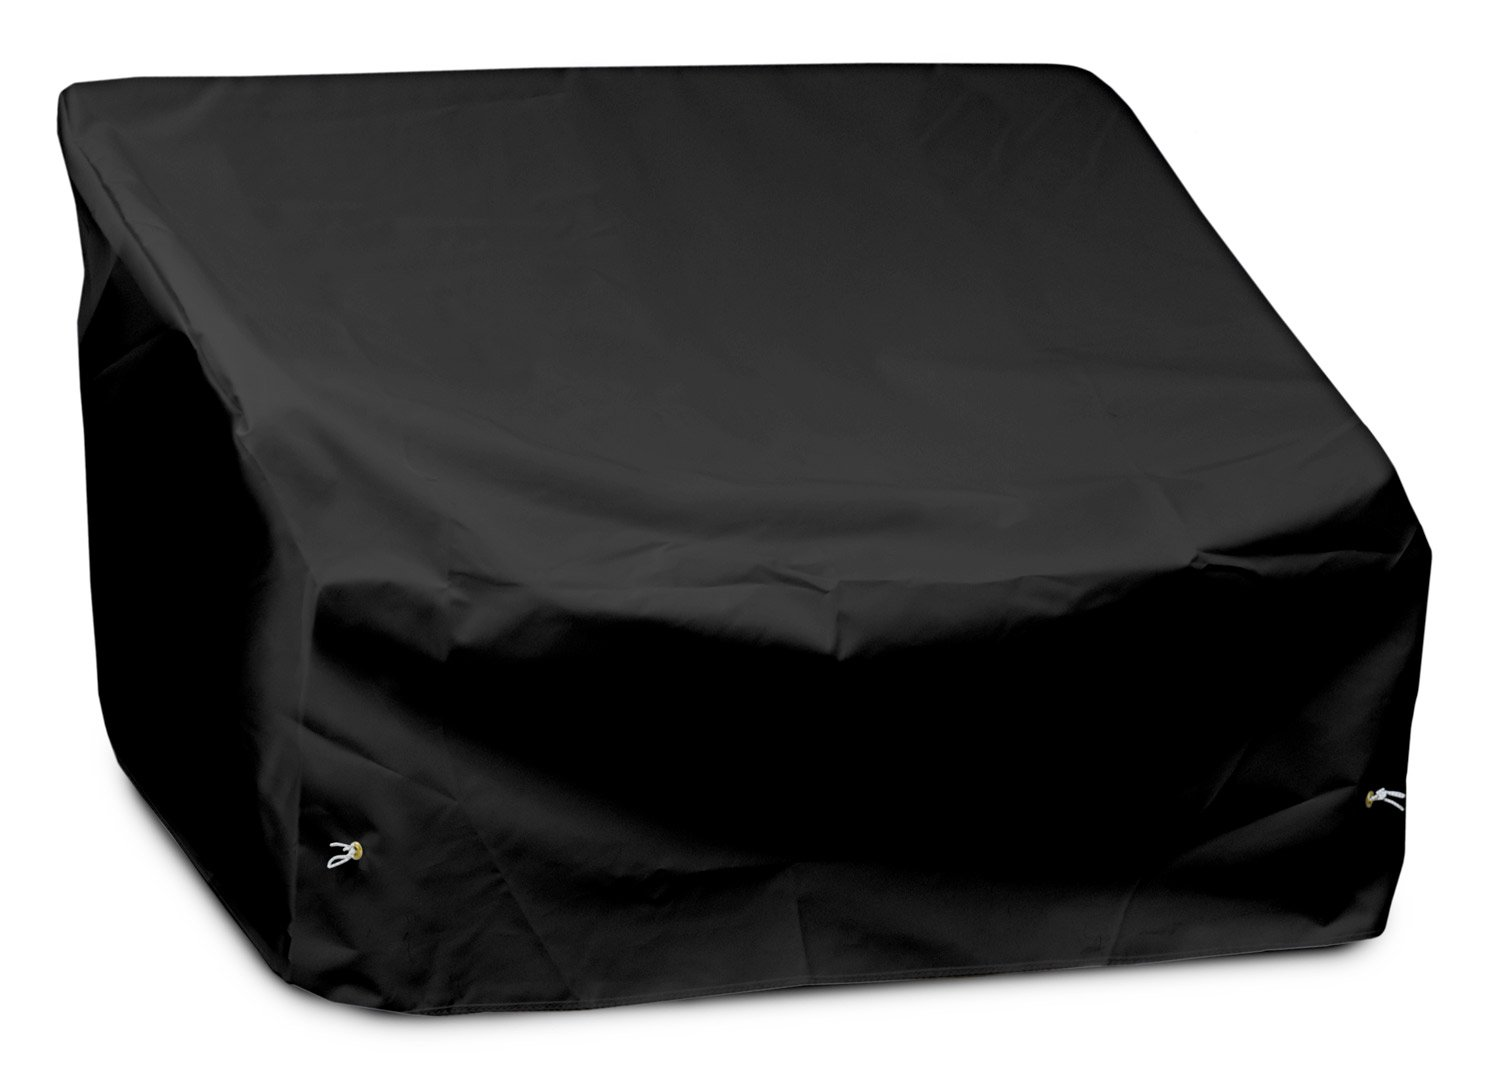 KoverRoos Weathermax 72350 2-Seat/Loveseat Cover, 54-Inch Width by 38-Inch Diameter by 31-Inch Height, Black